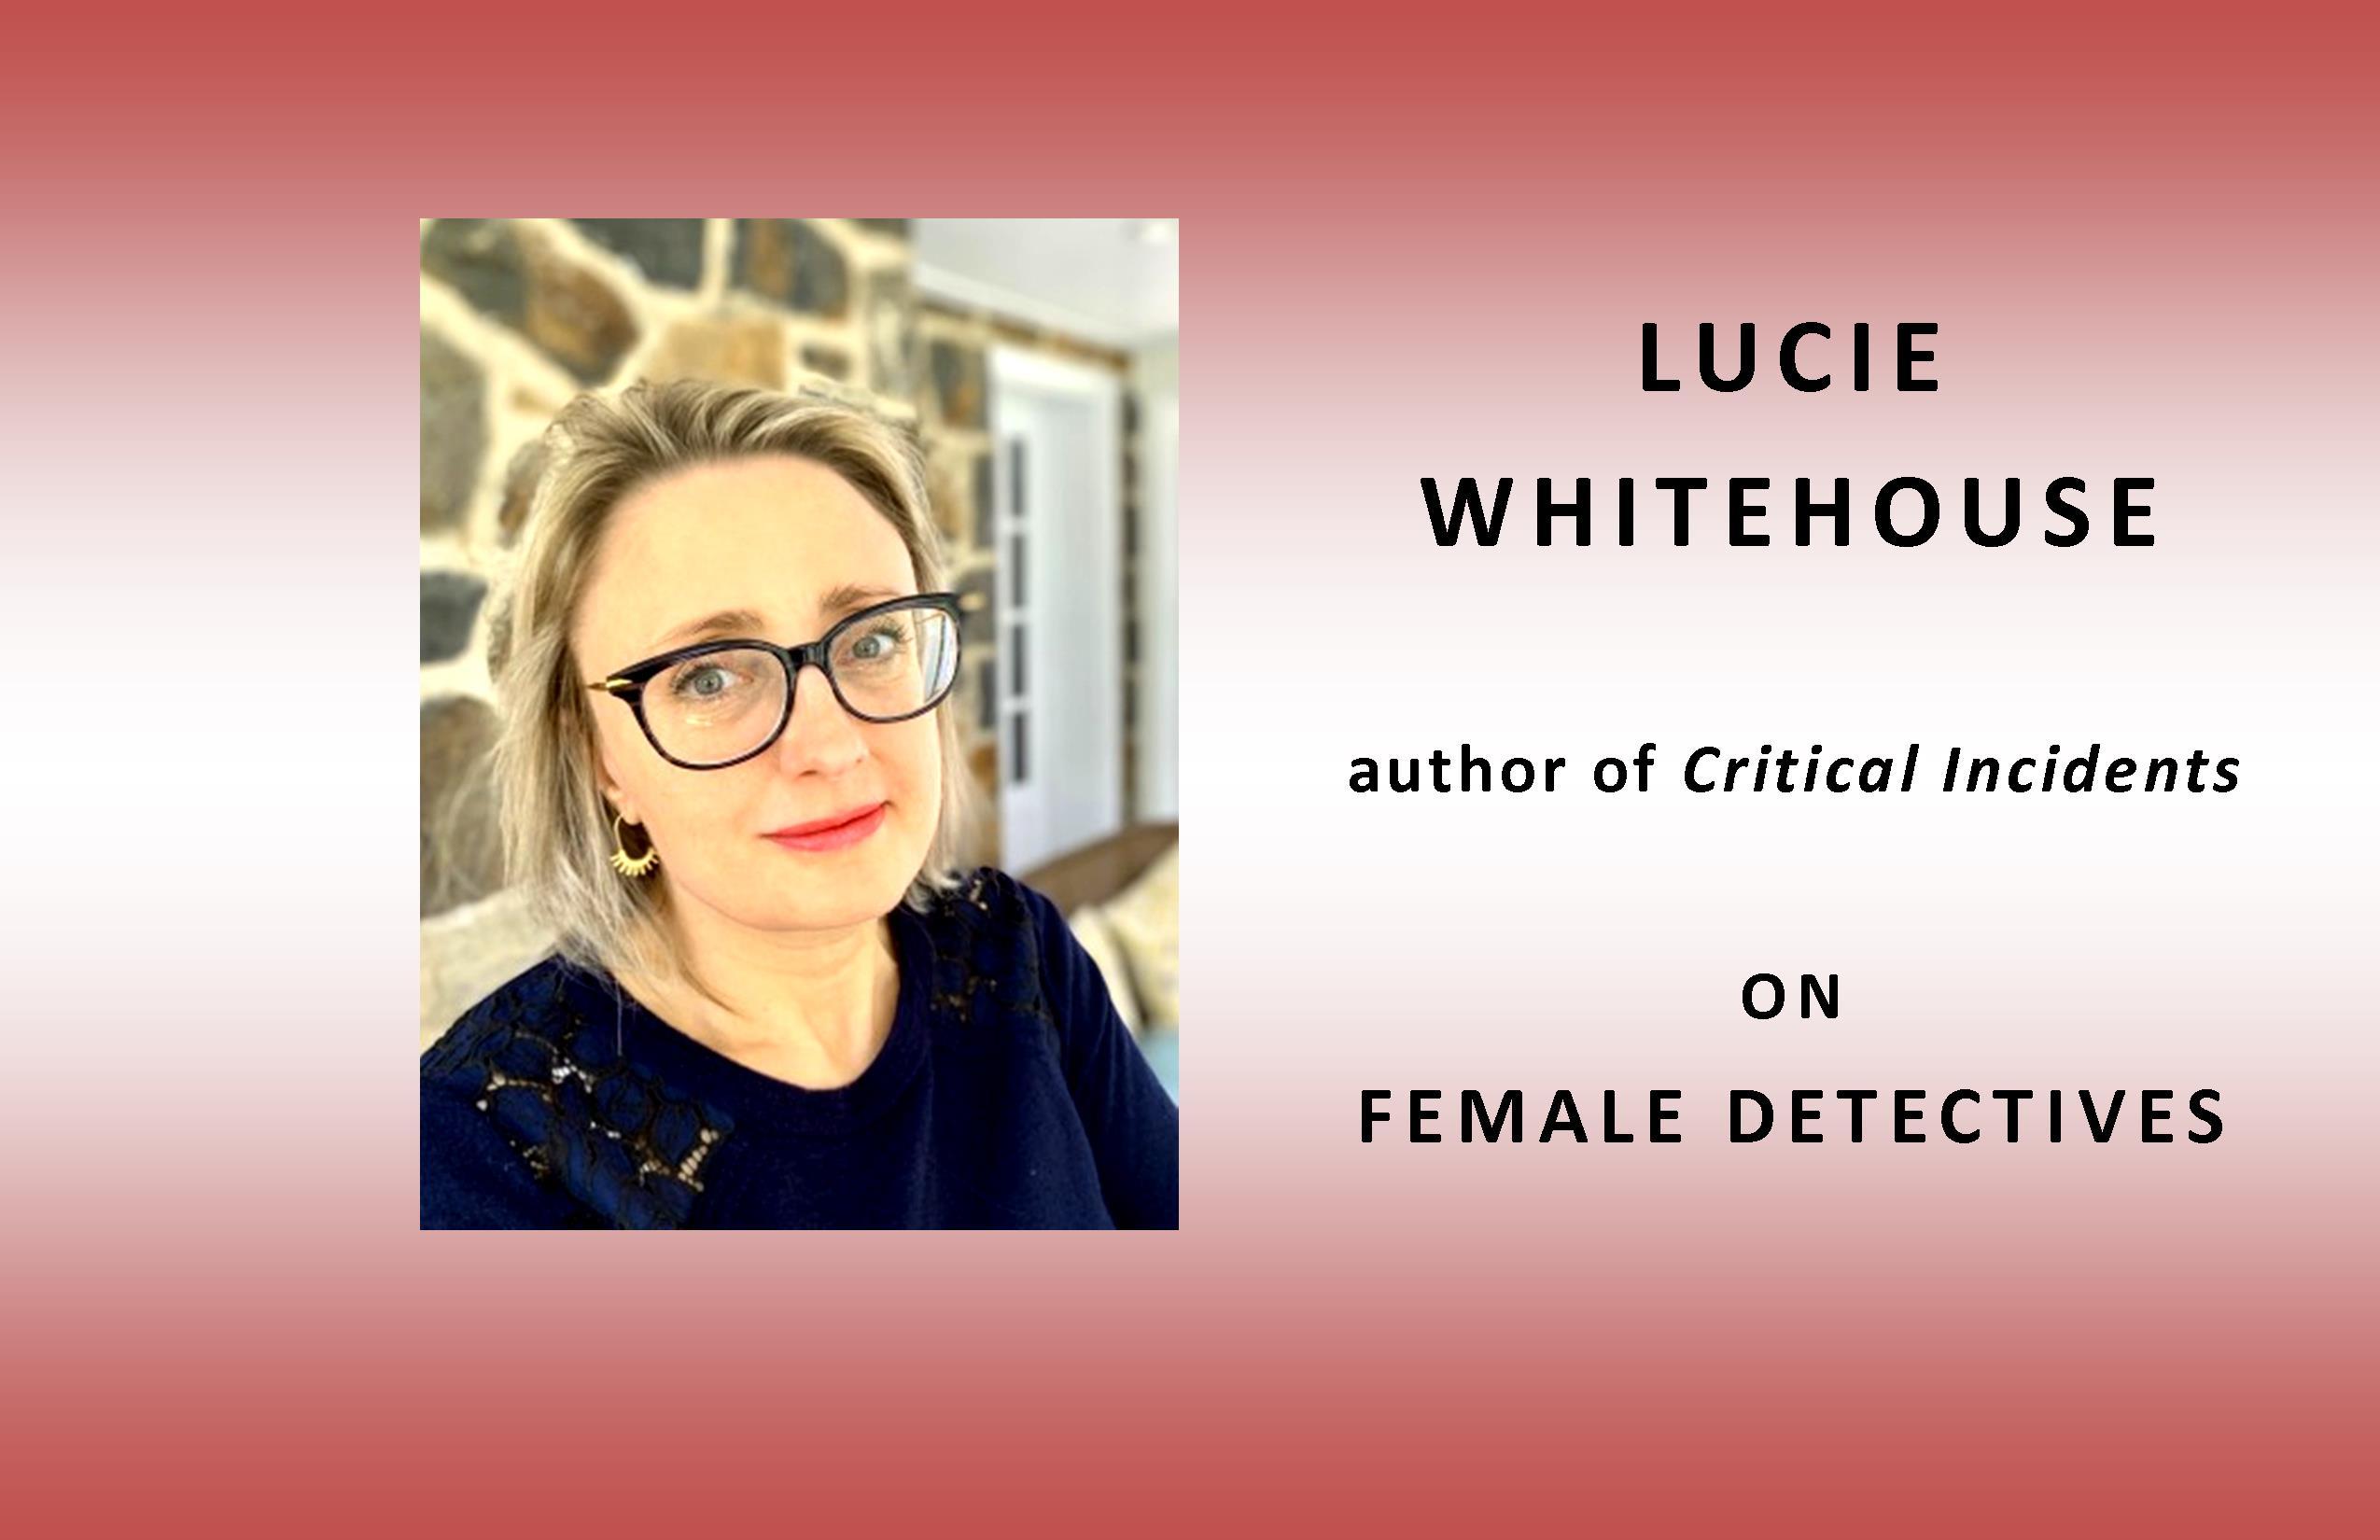 LUCIE WHITEHOUSE on Female Detectives